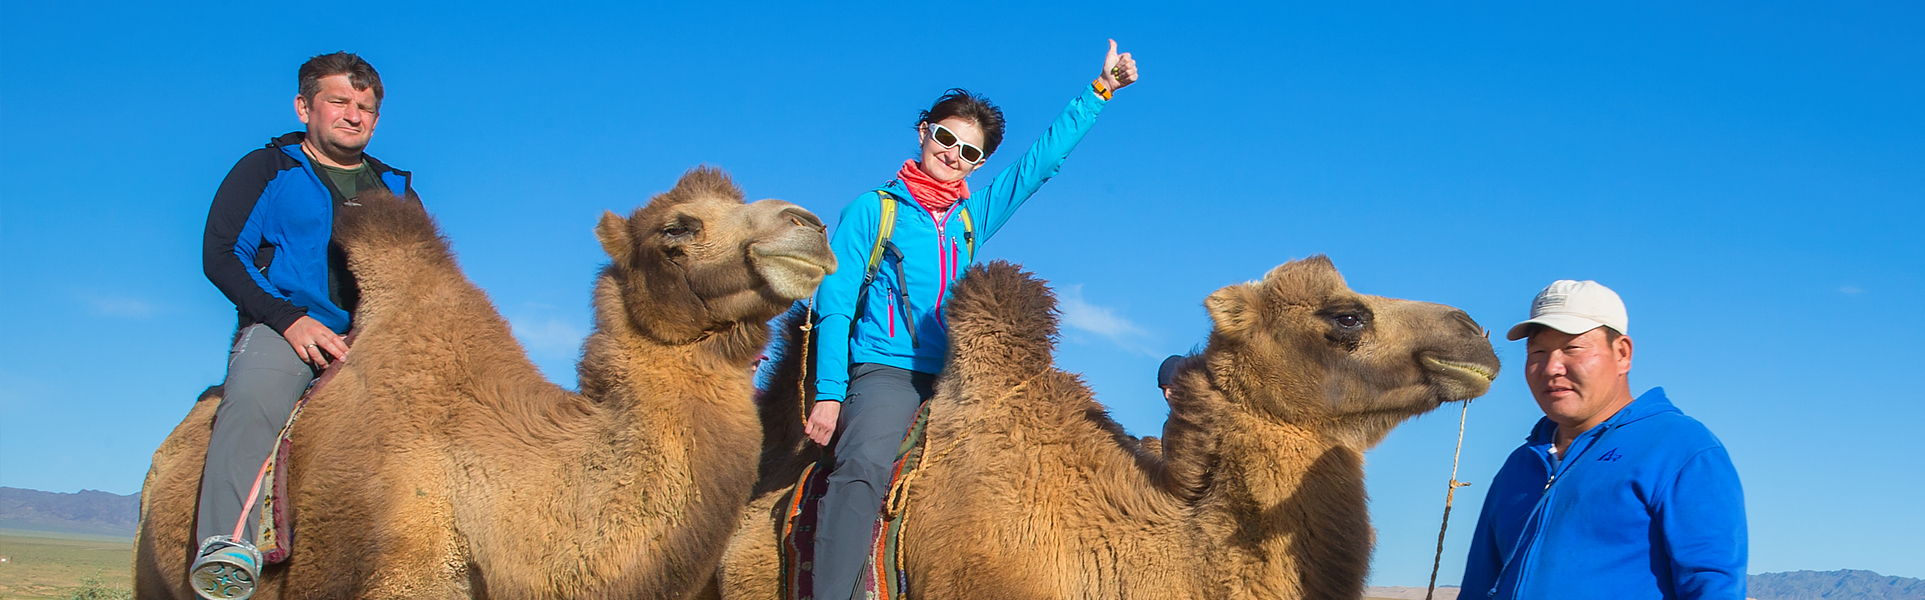 Mongolia best selling Tours-Ayan travel